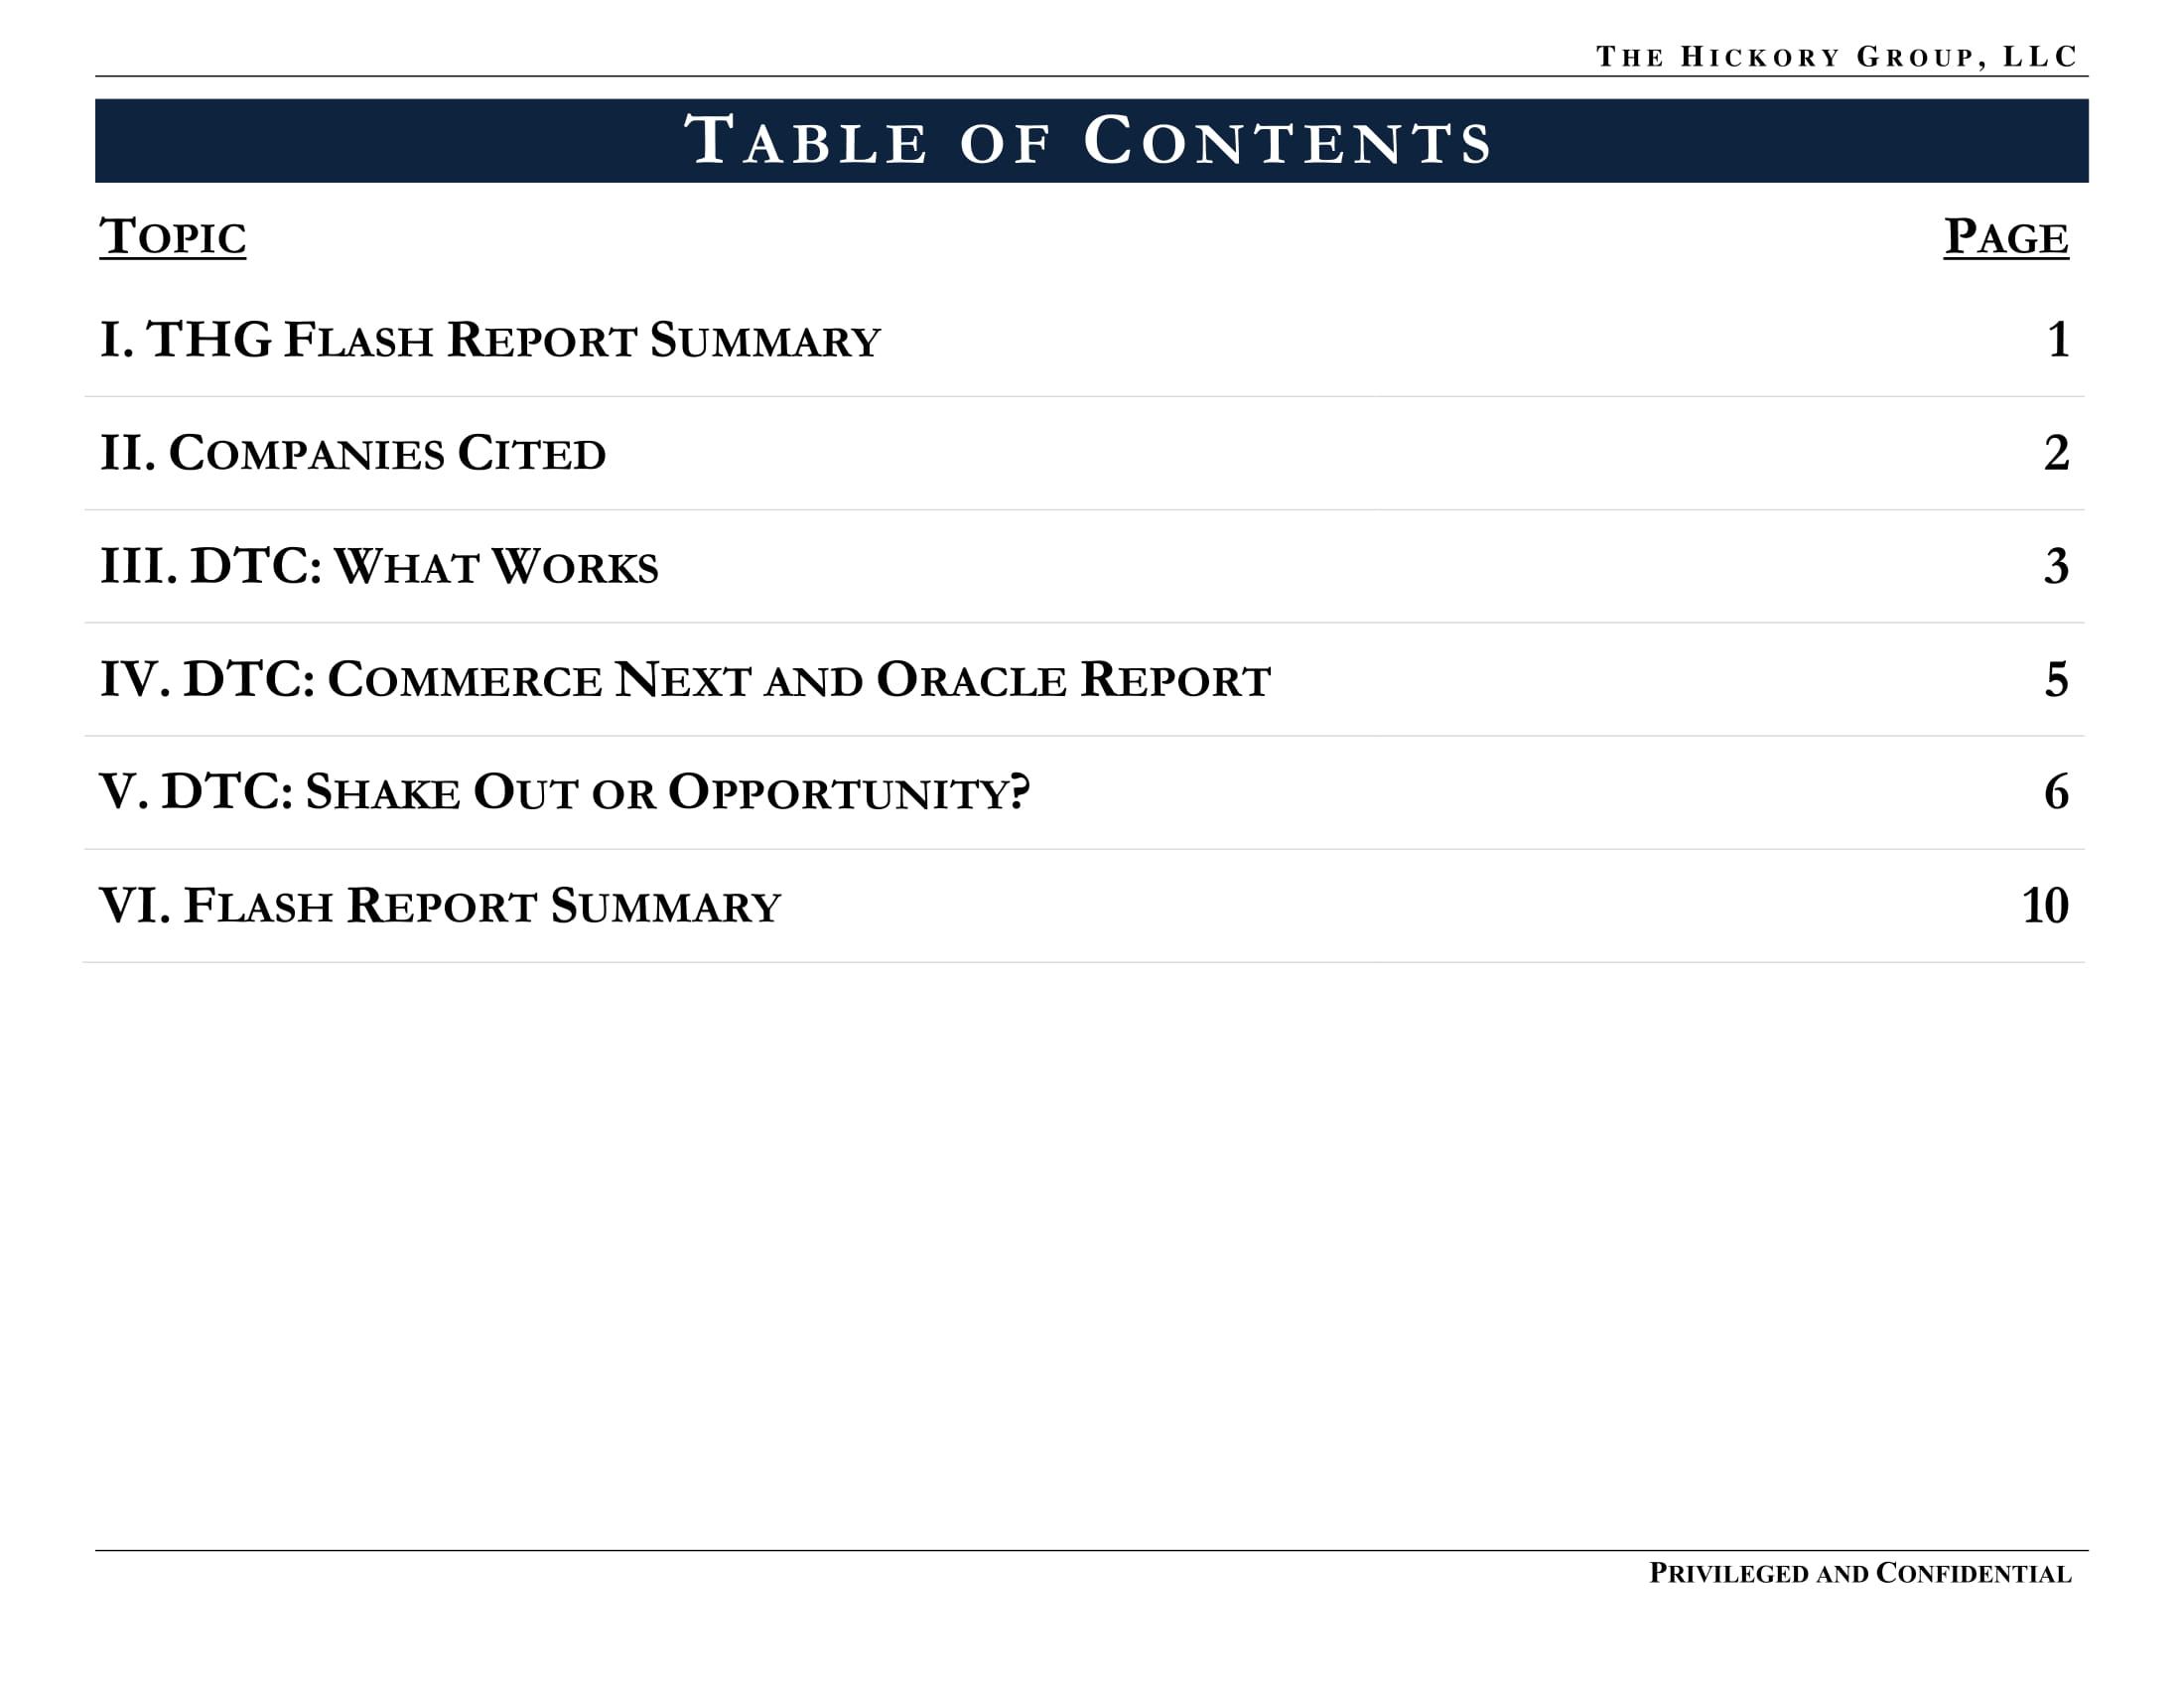 FINAL_THG DTC Flash Report_Q2 2019 _ Public Release (Privileged and Confidential)-02.jpg